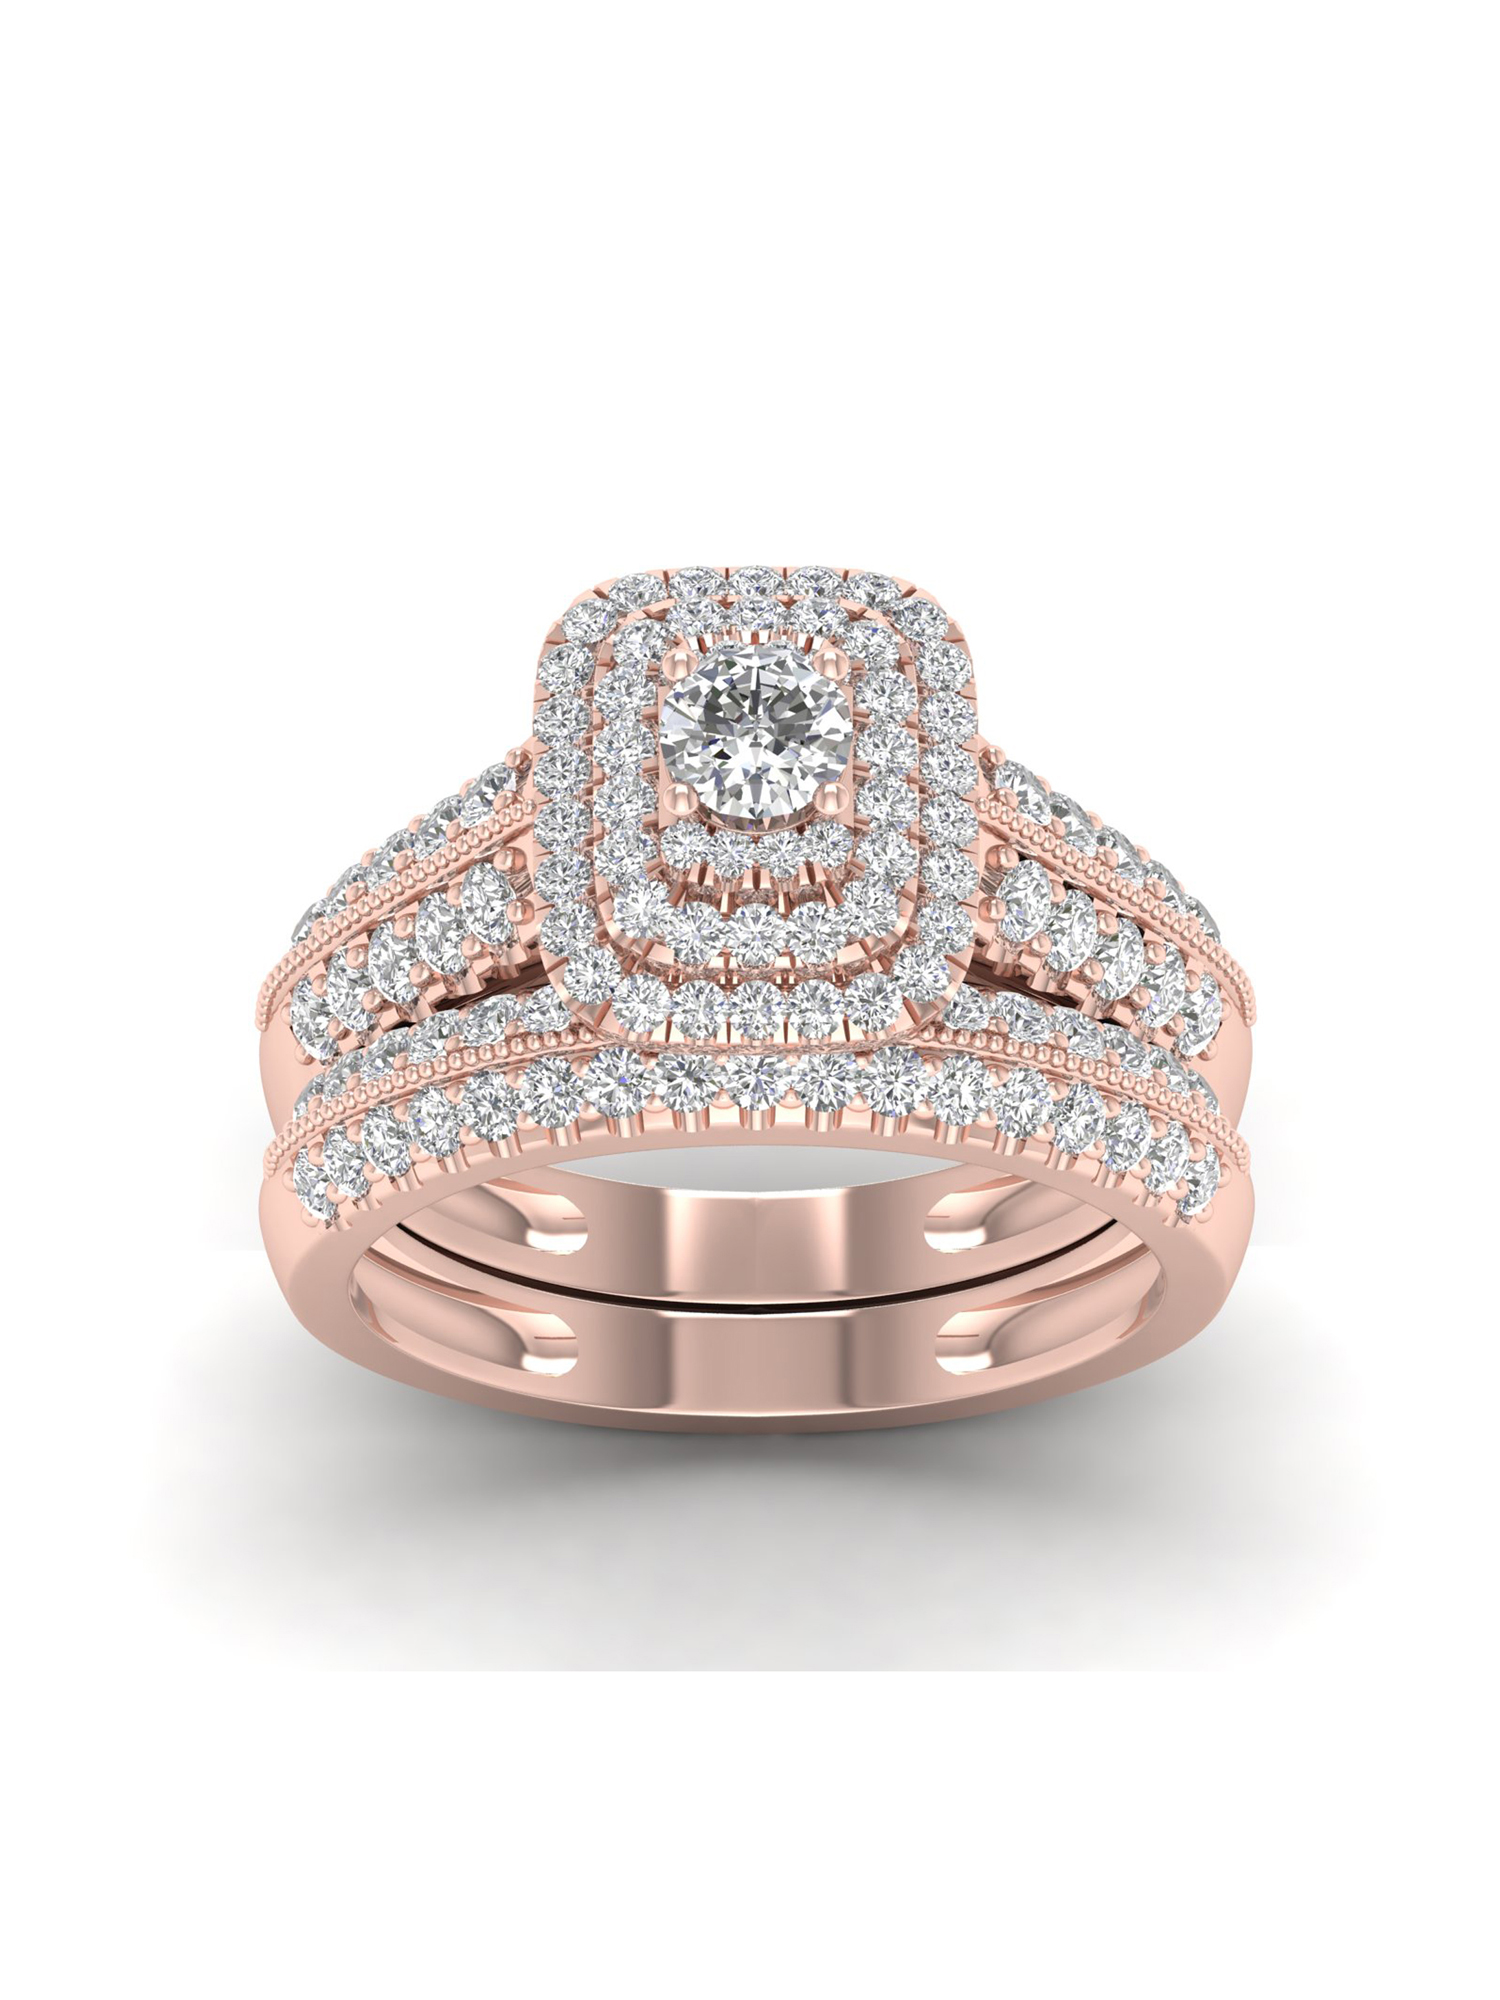 Imperial 1ct TDW Diamond 14K Rose Gold Halo Engagement Ring Set